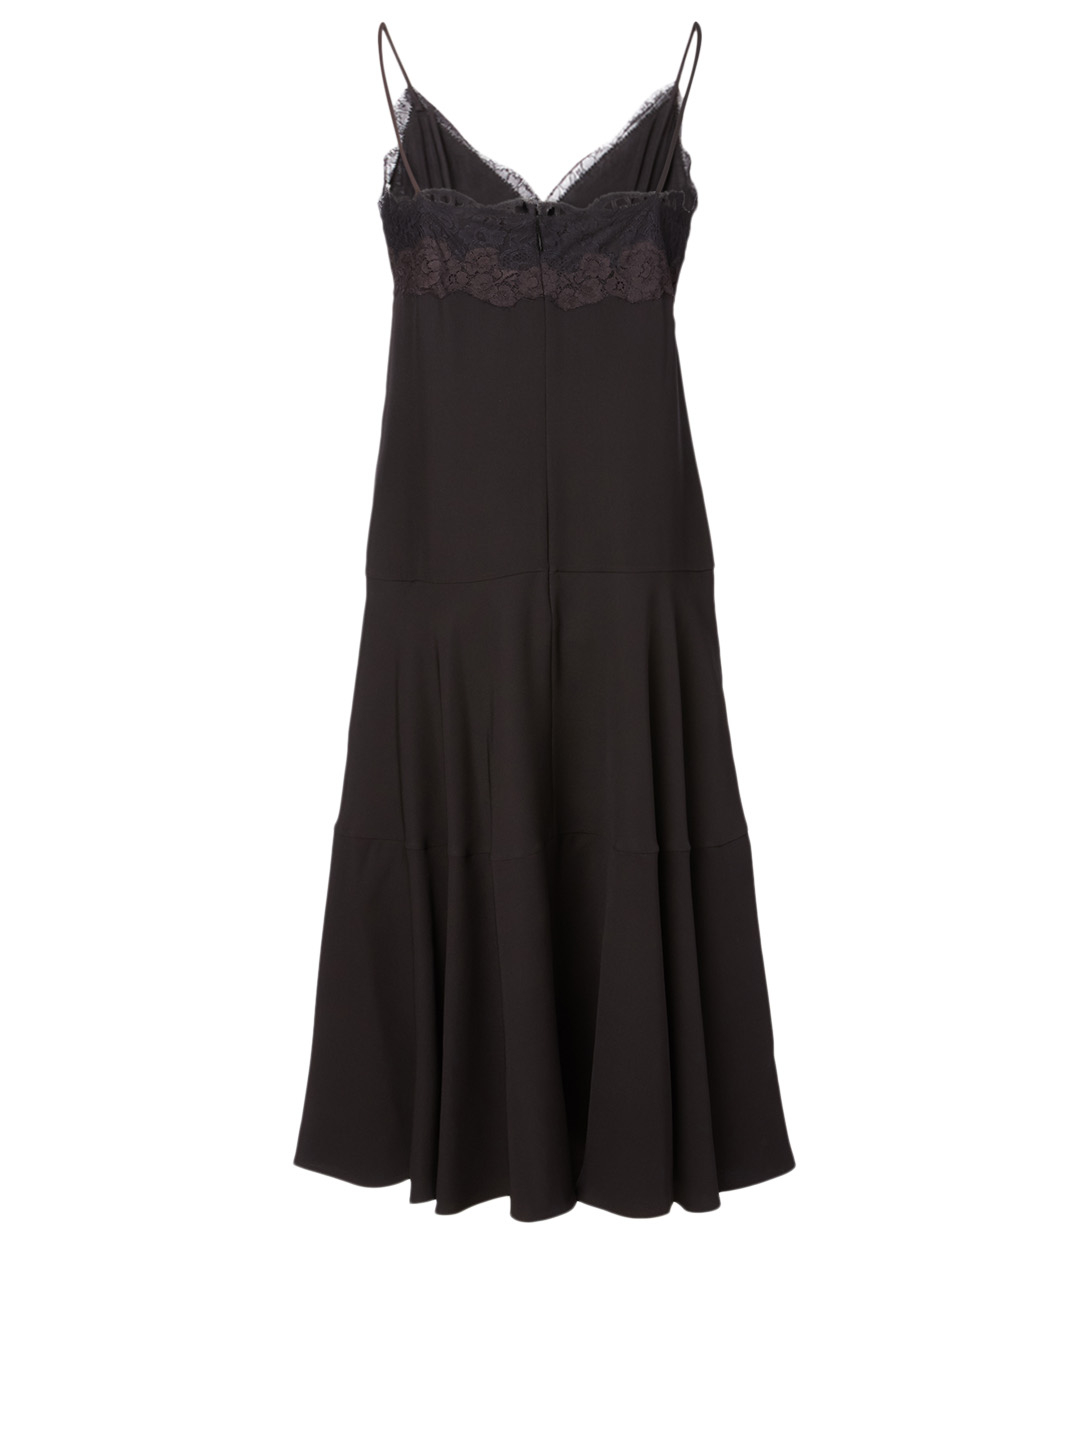 VALENTINO Silk Midi Dress Women's Black